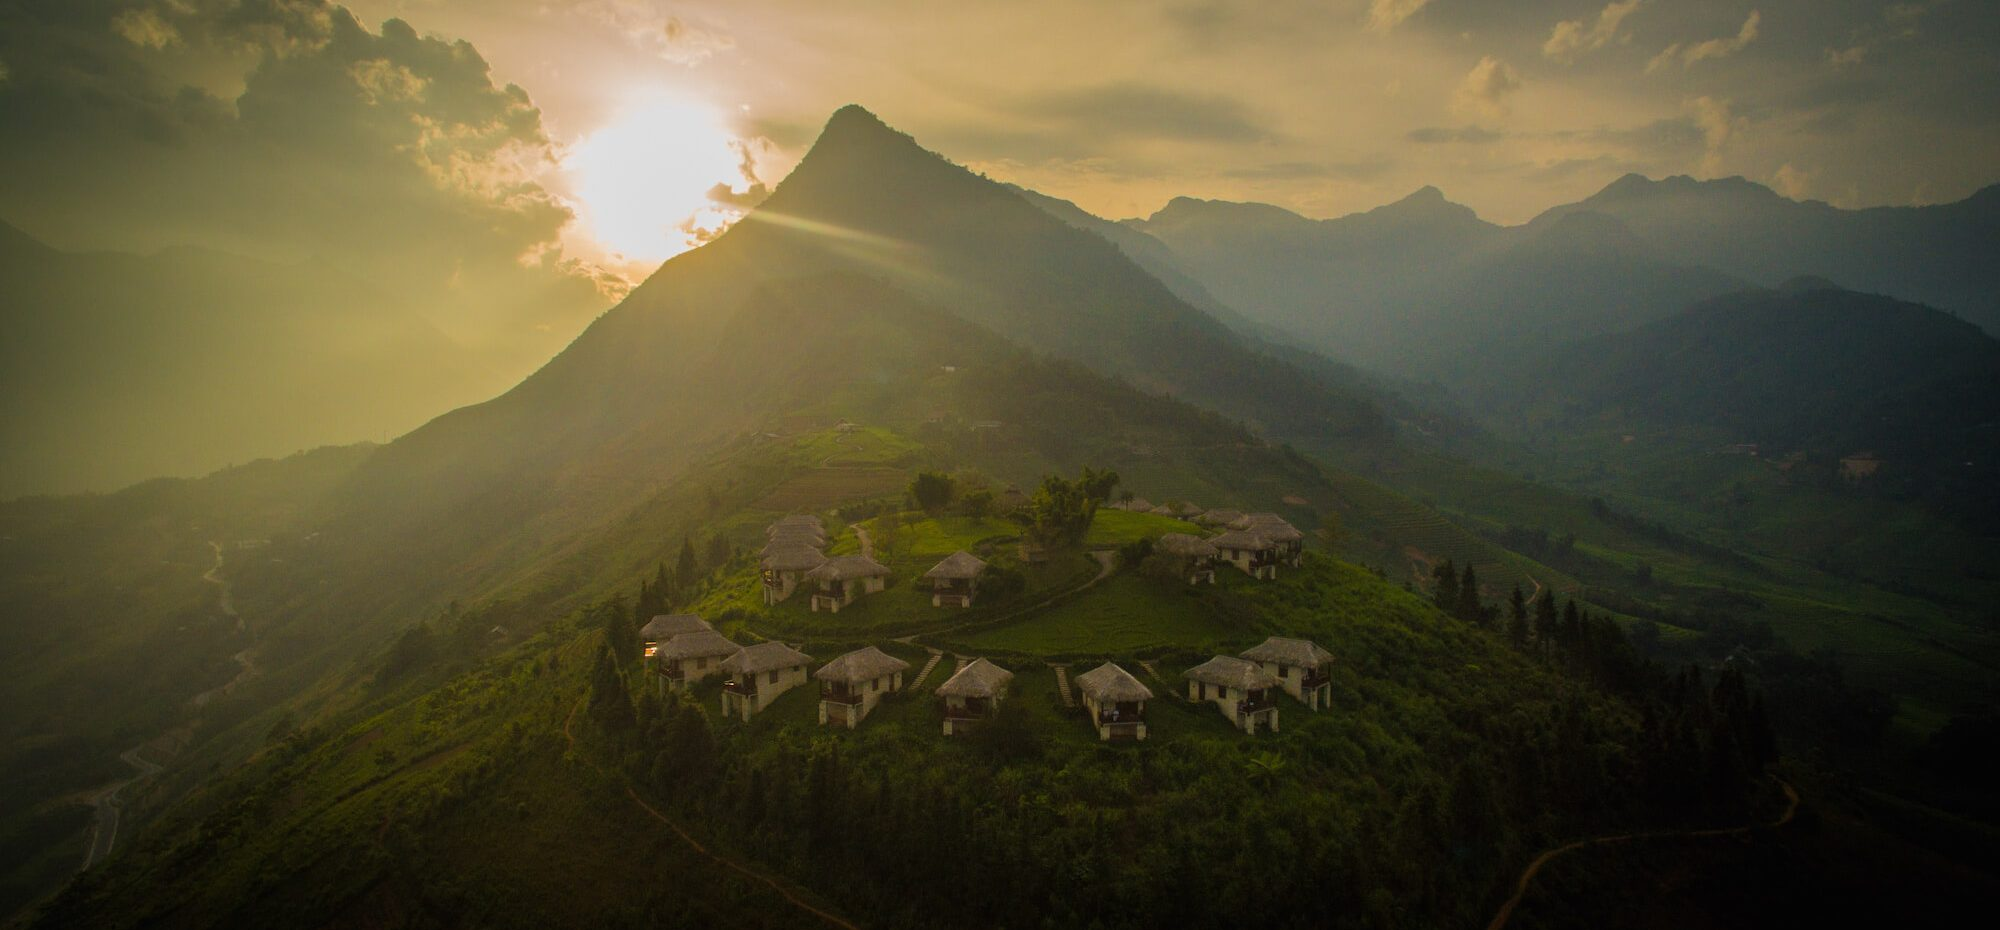 6 Highland Retreats In Vietnam That Will Take You Closer To Heaven ...